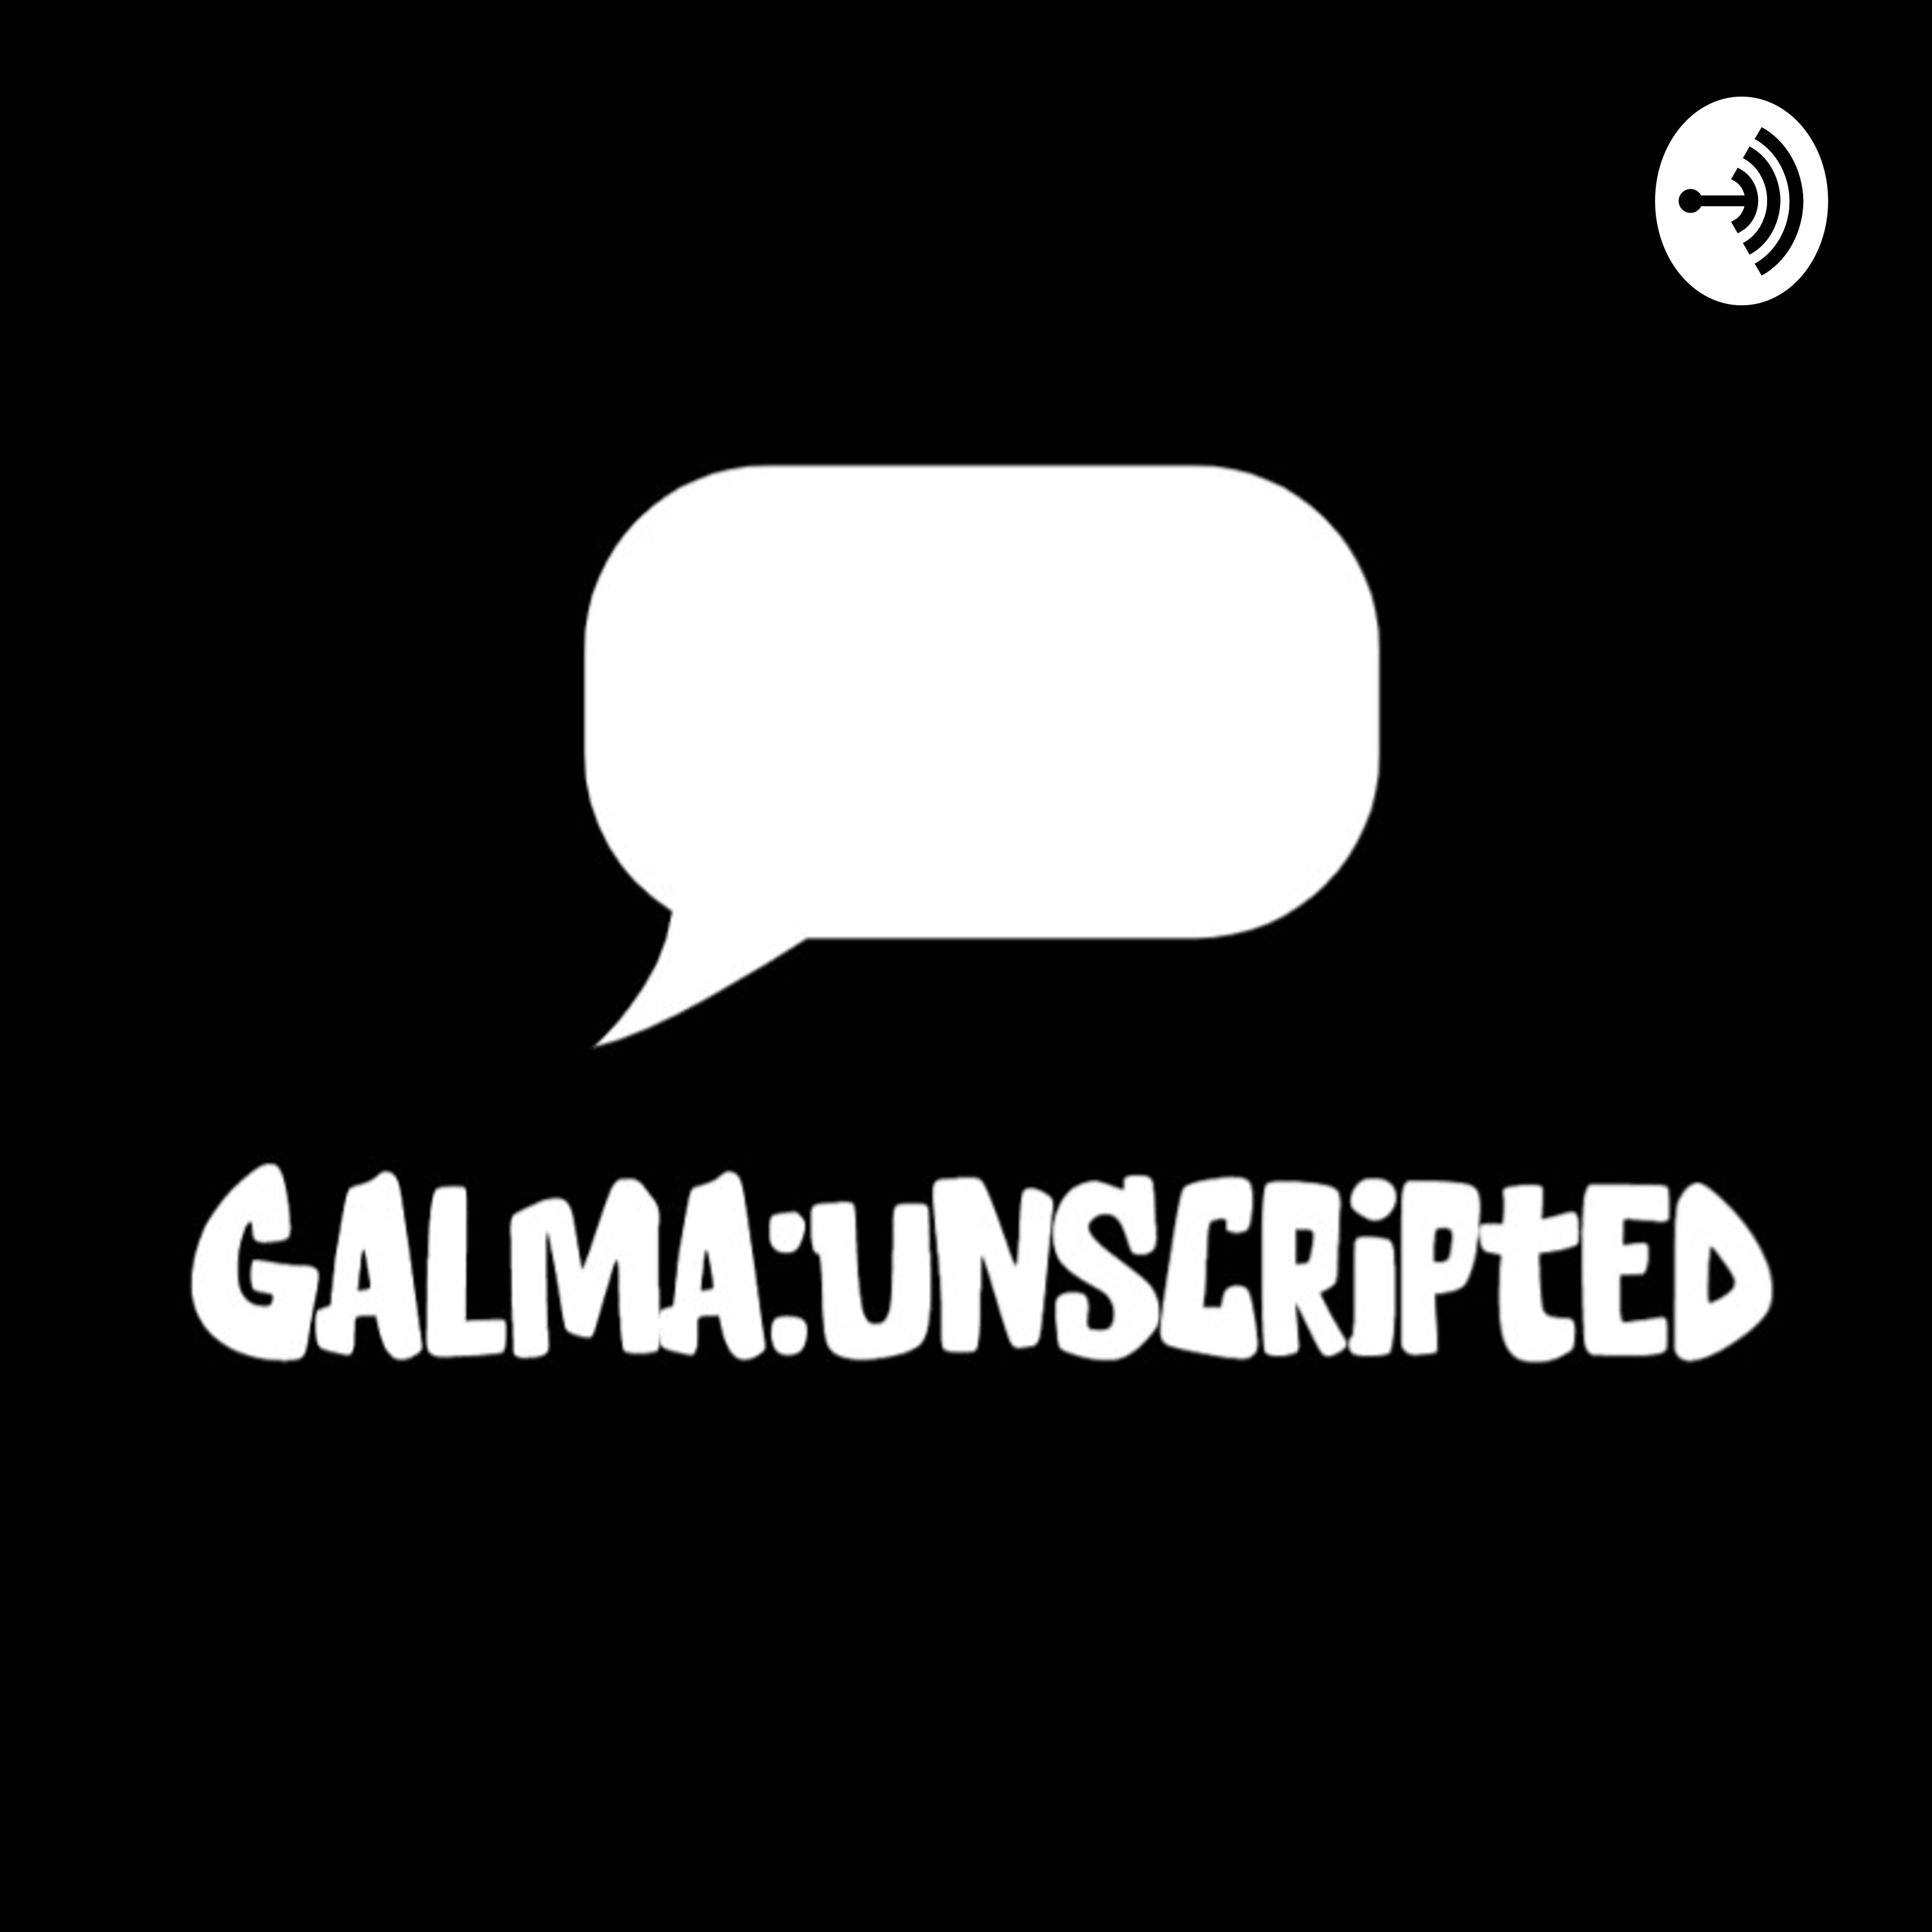 Galma:Unscripted on Jamit